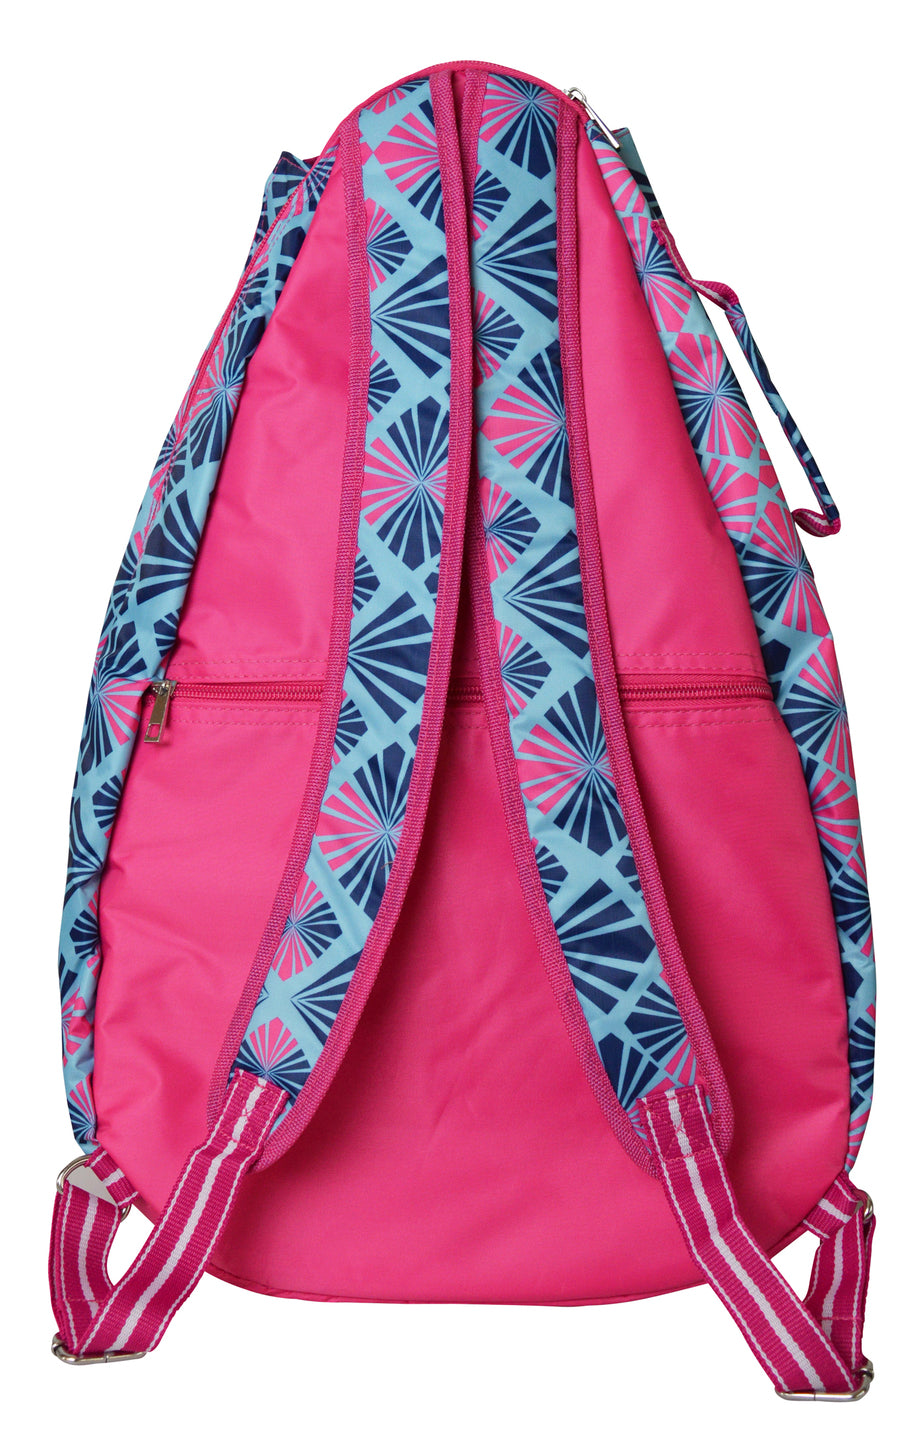 Summer Rays Tennis Backpack - FINAL SALE